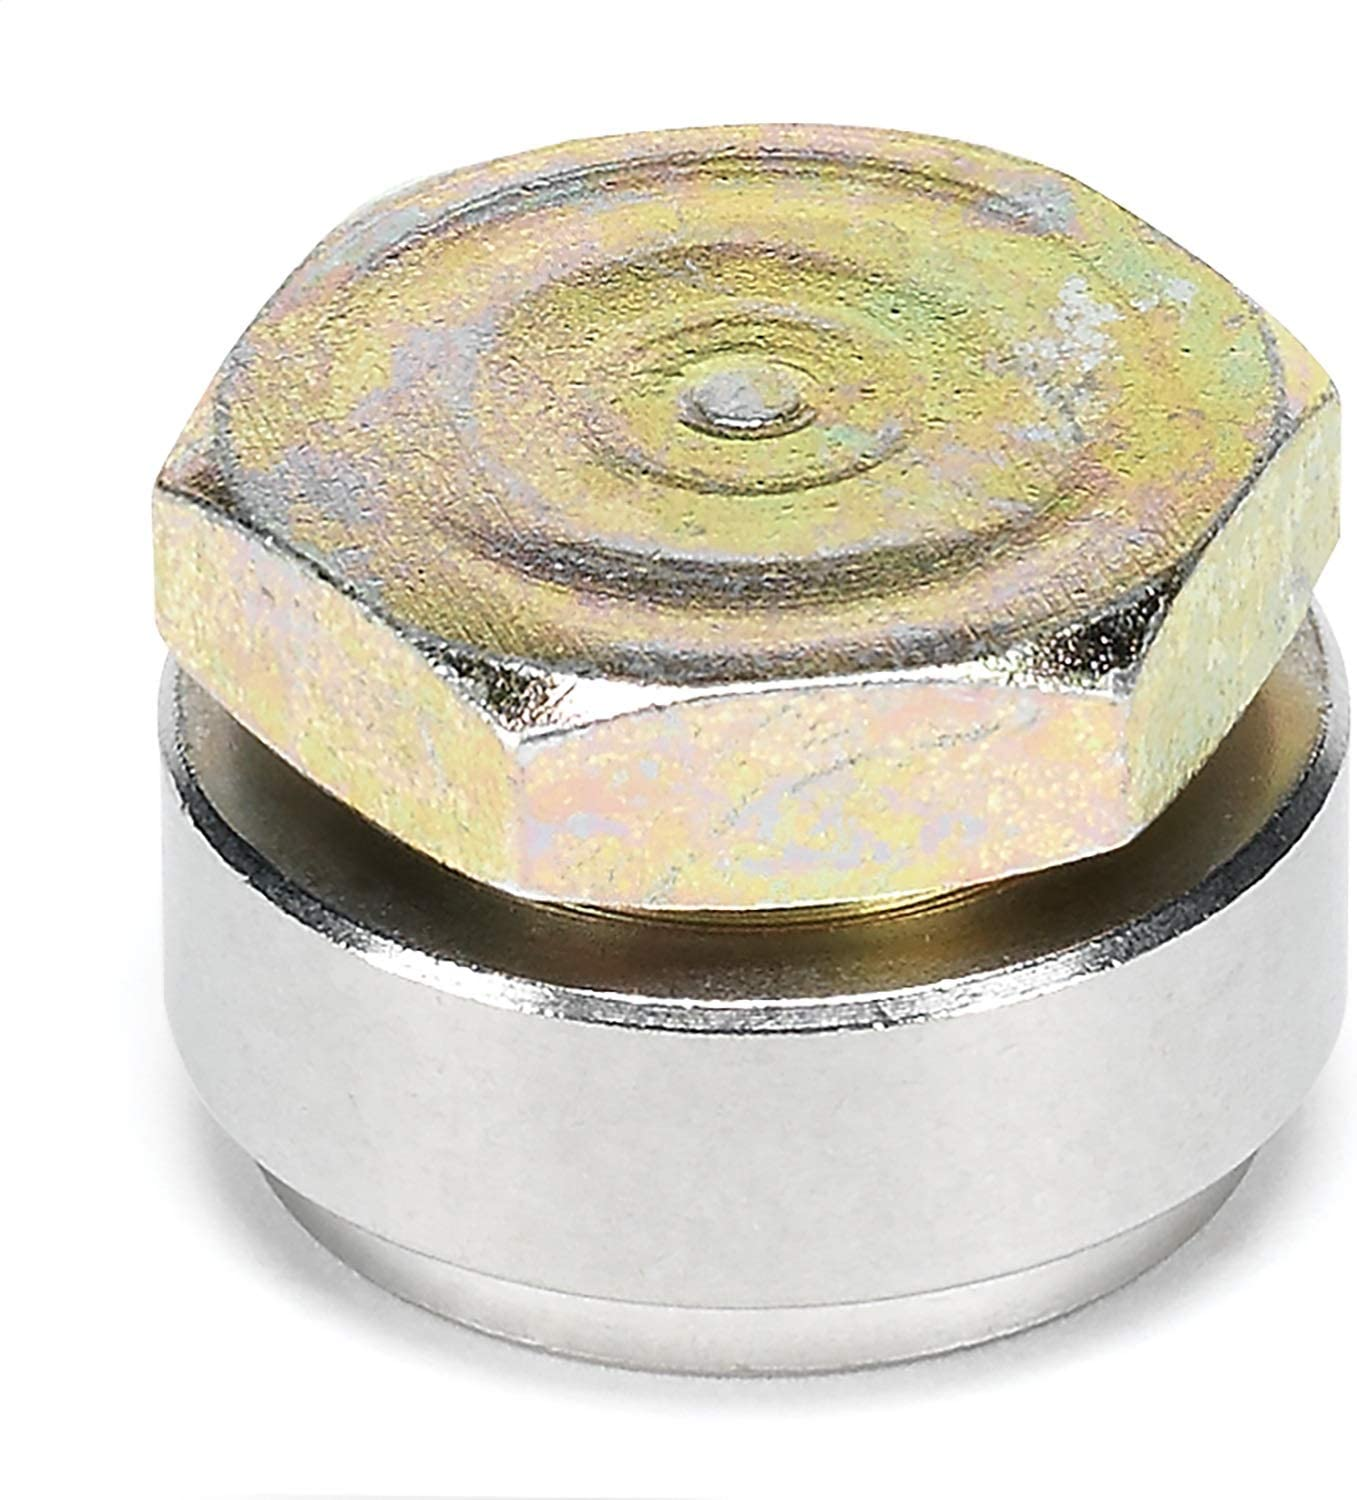 AutoMeter ST269553 Weld Fitting, Stainless Steel, for Wideband Lambda Sensor